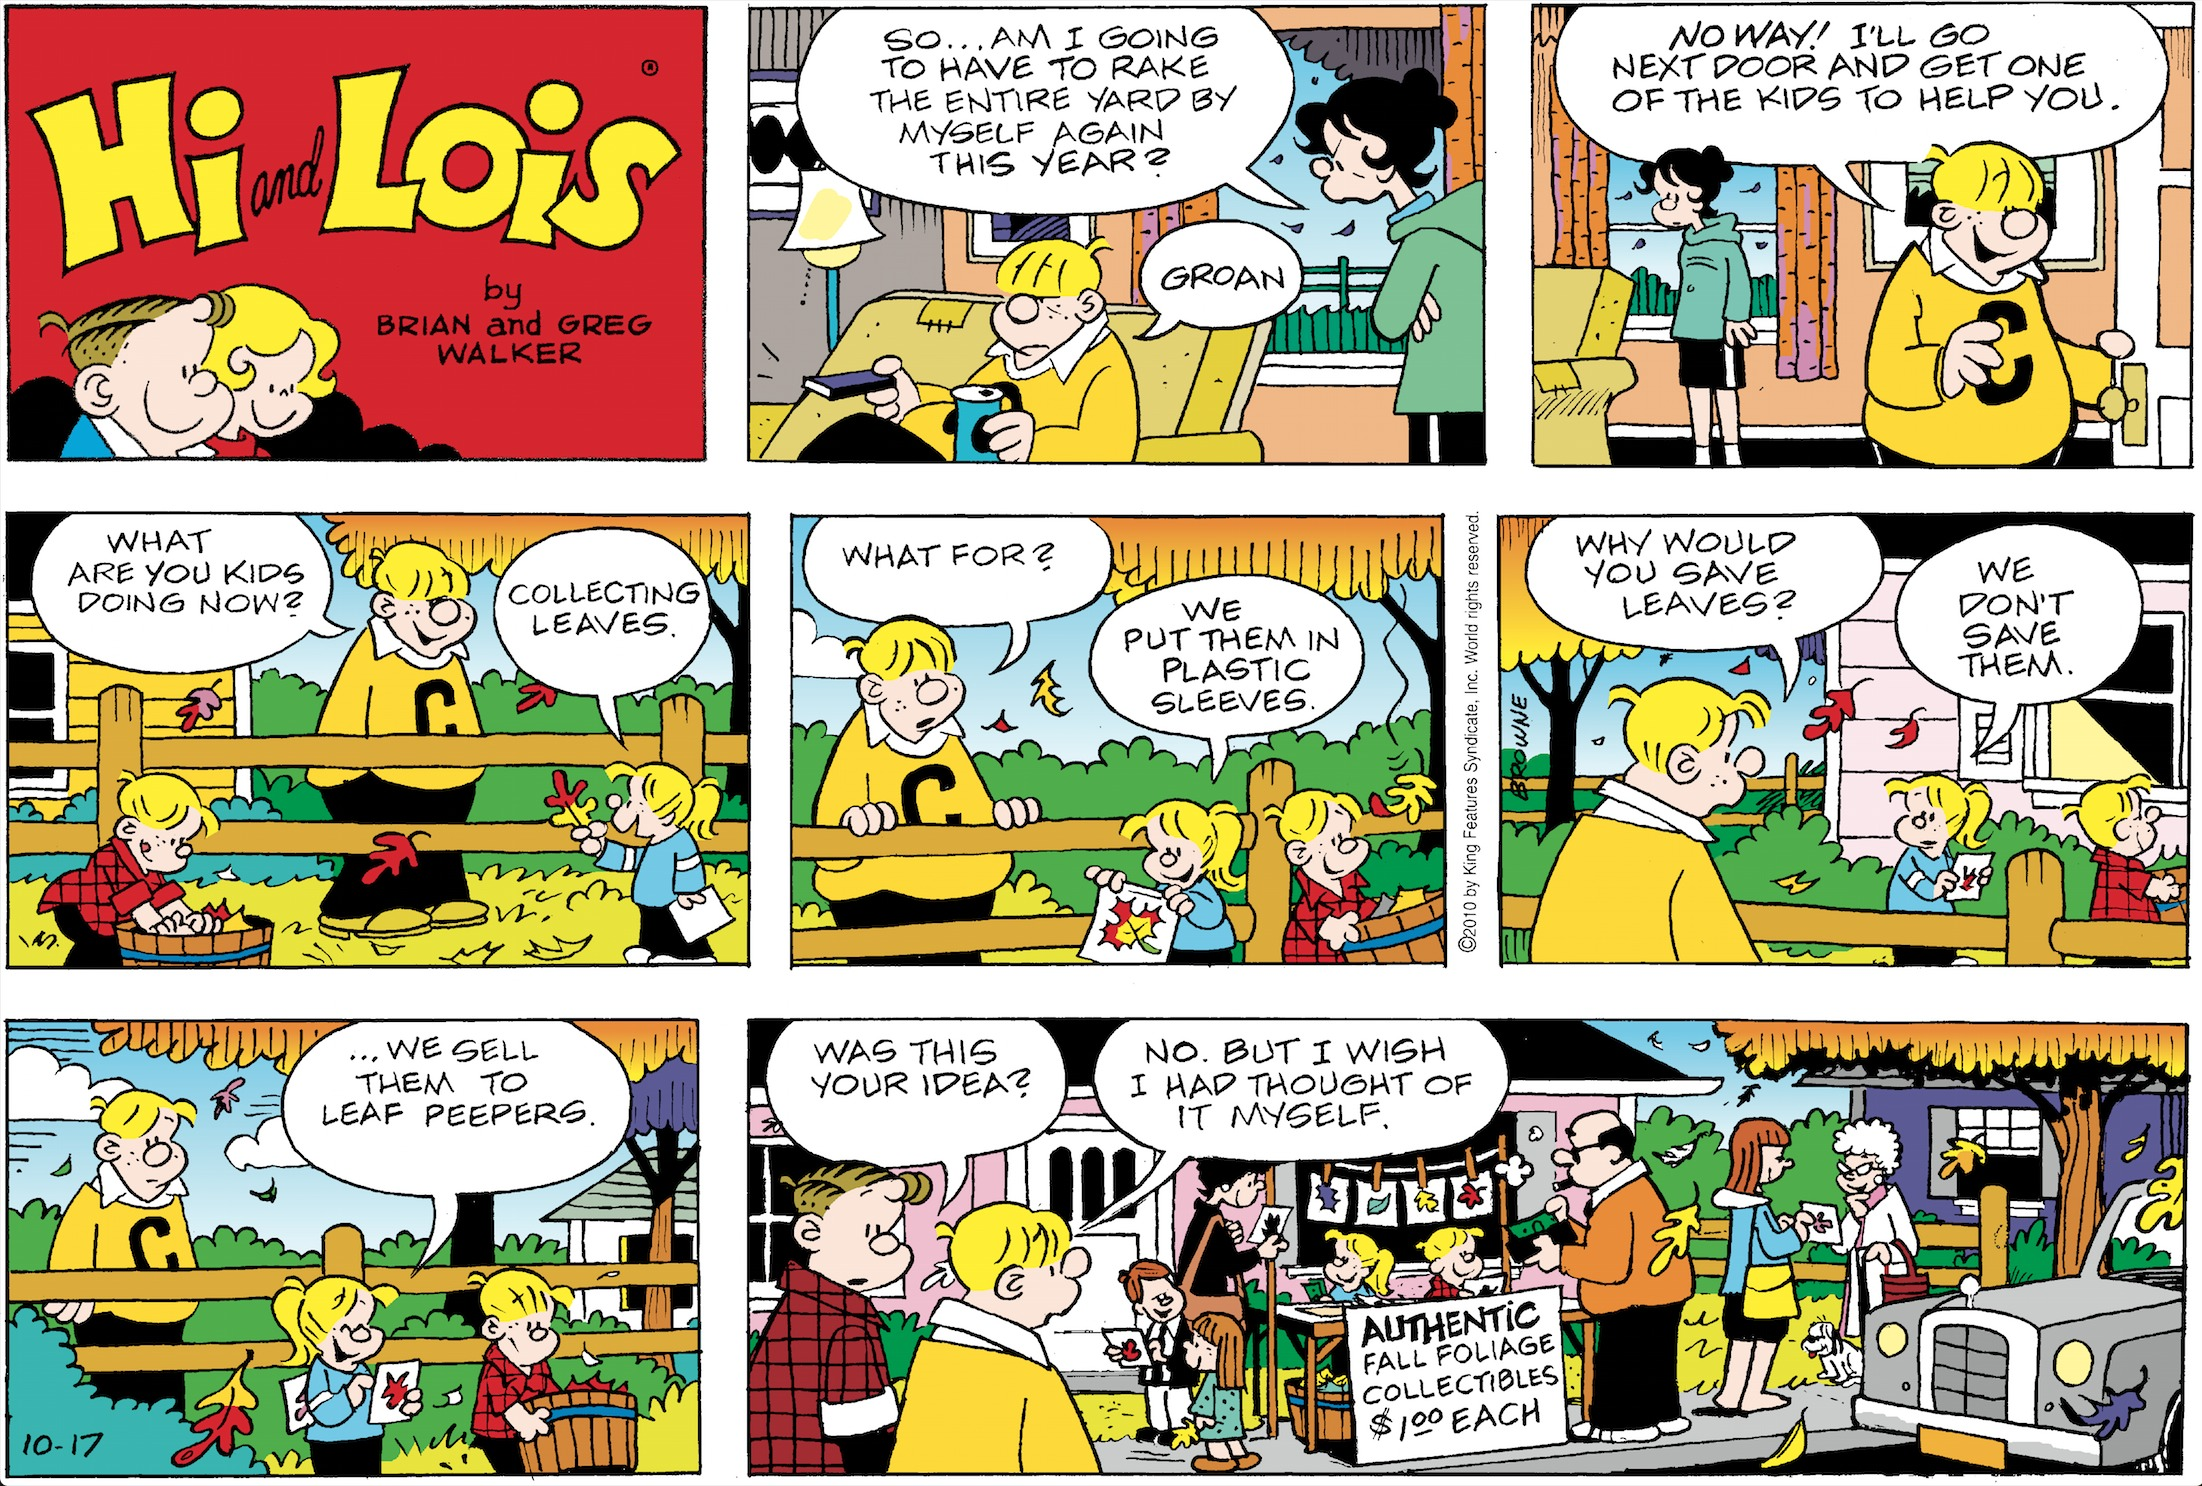 Hi and Lois Sunday page October 17, 2010.